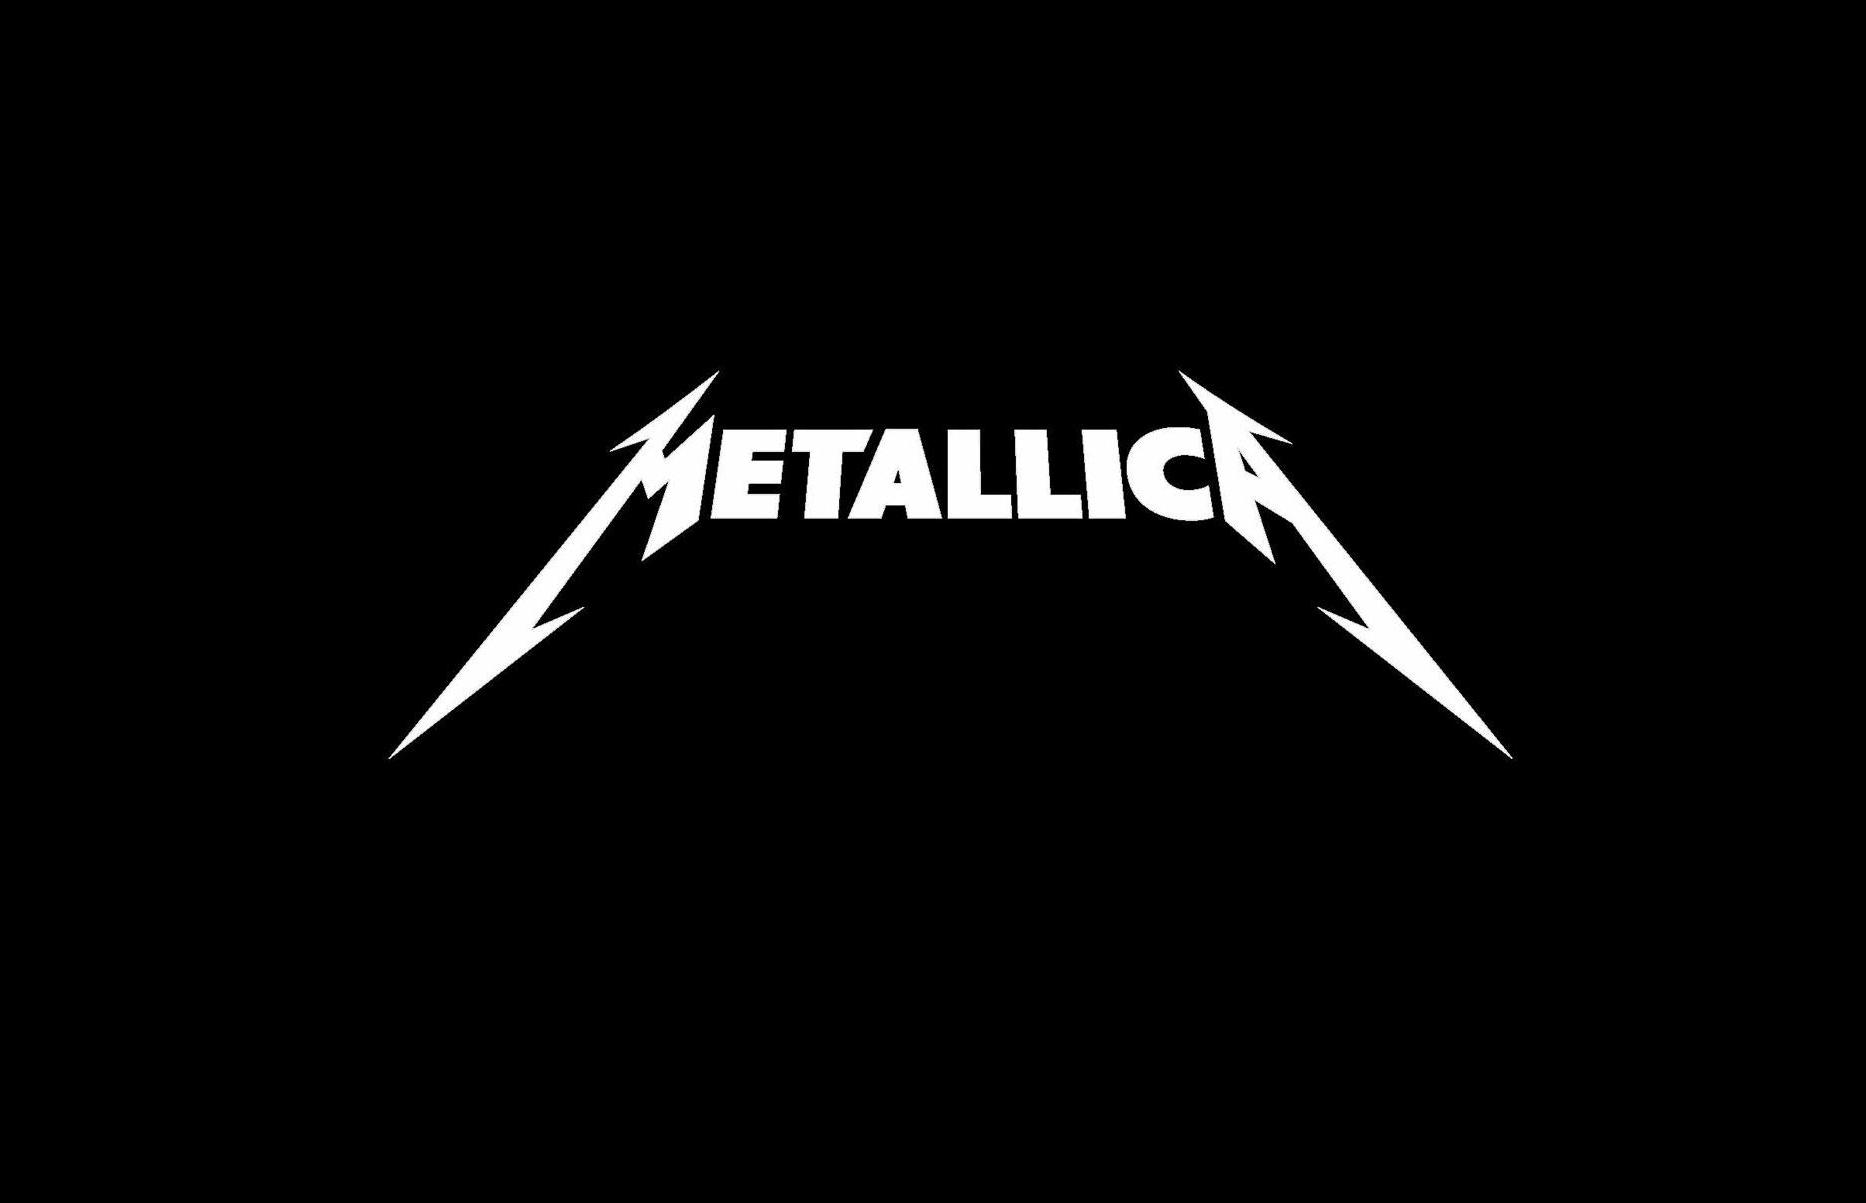 metallica lighting logo wallpaper - photo #21